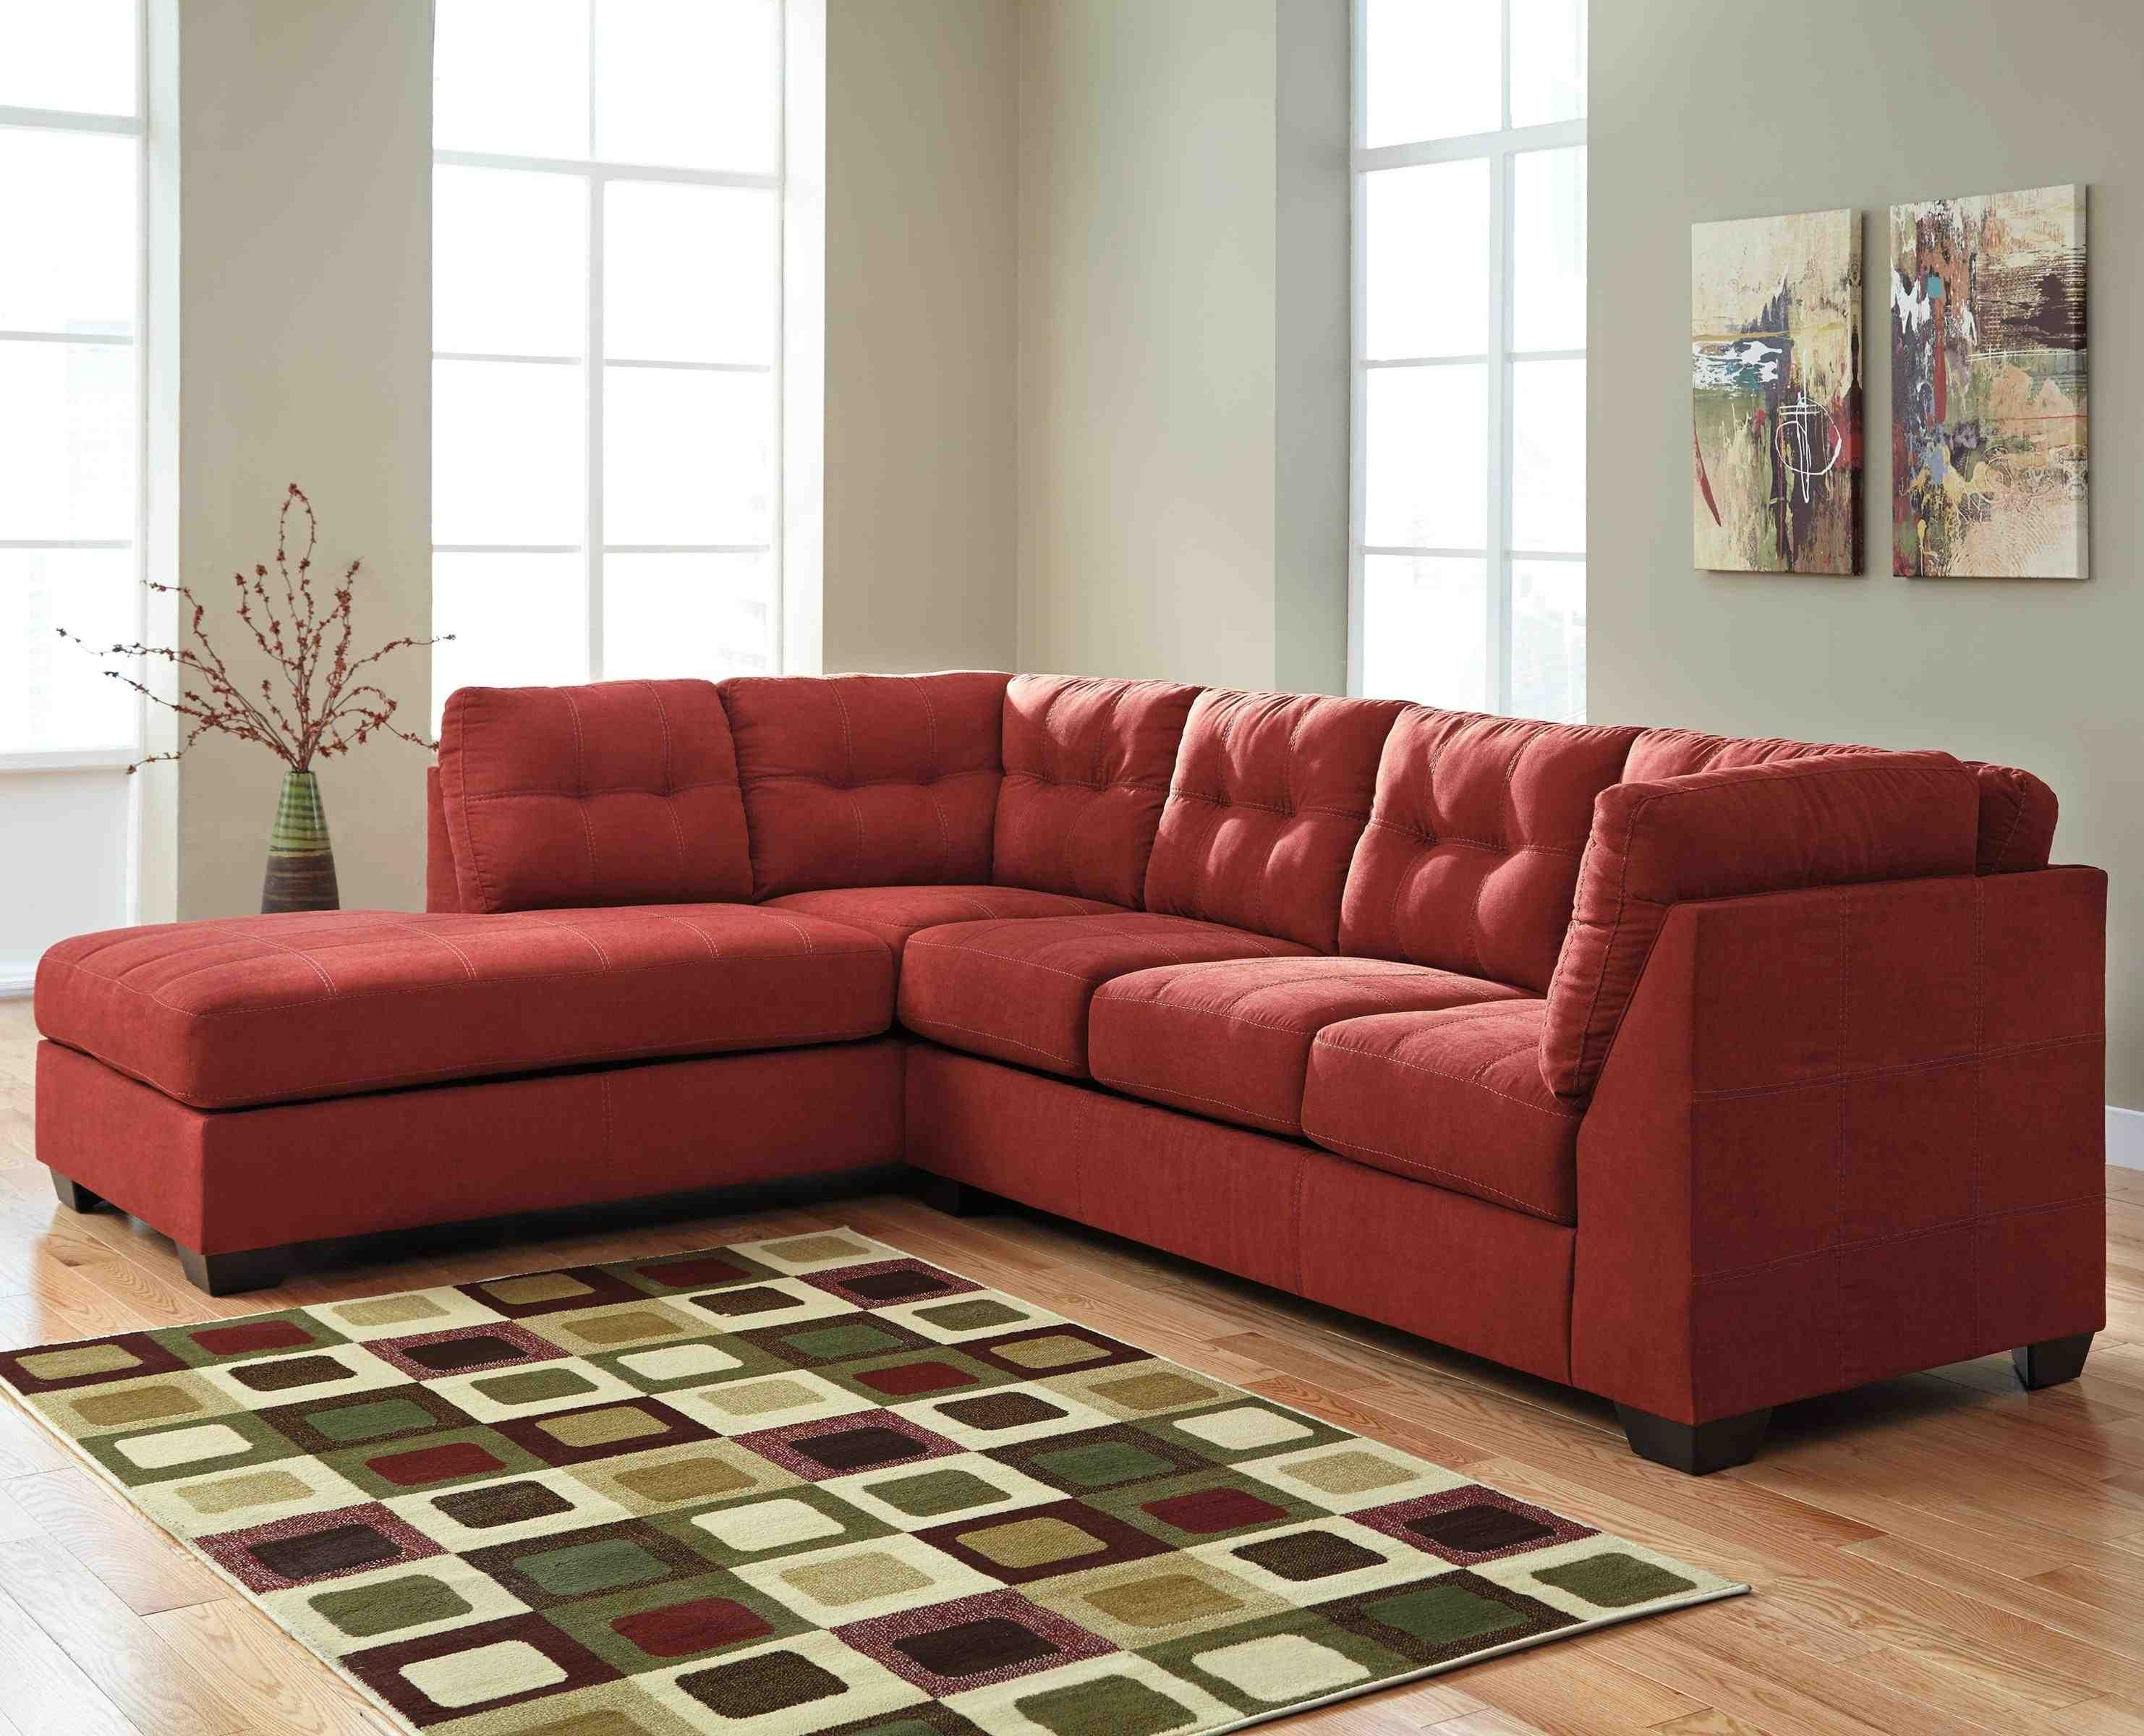 Microfiberctional Sofa With Chaise Amazing Photo Inspirations Within Arrowmask 2 Piece Sectionals With Laf Chaise (Image 19 of 25)